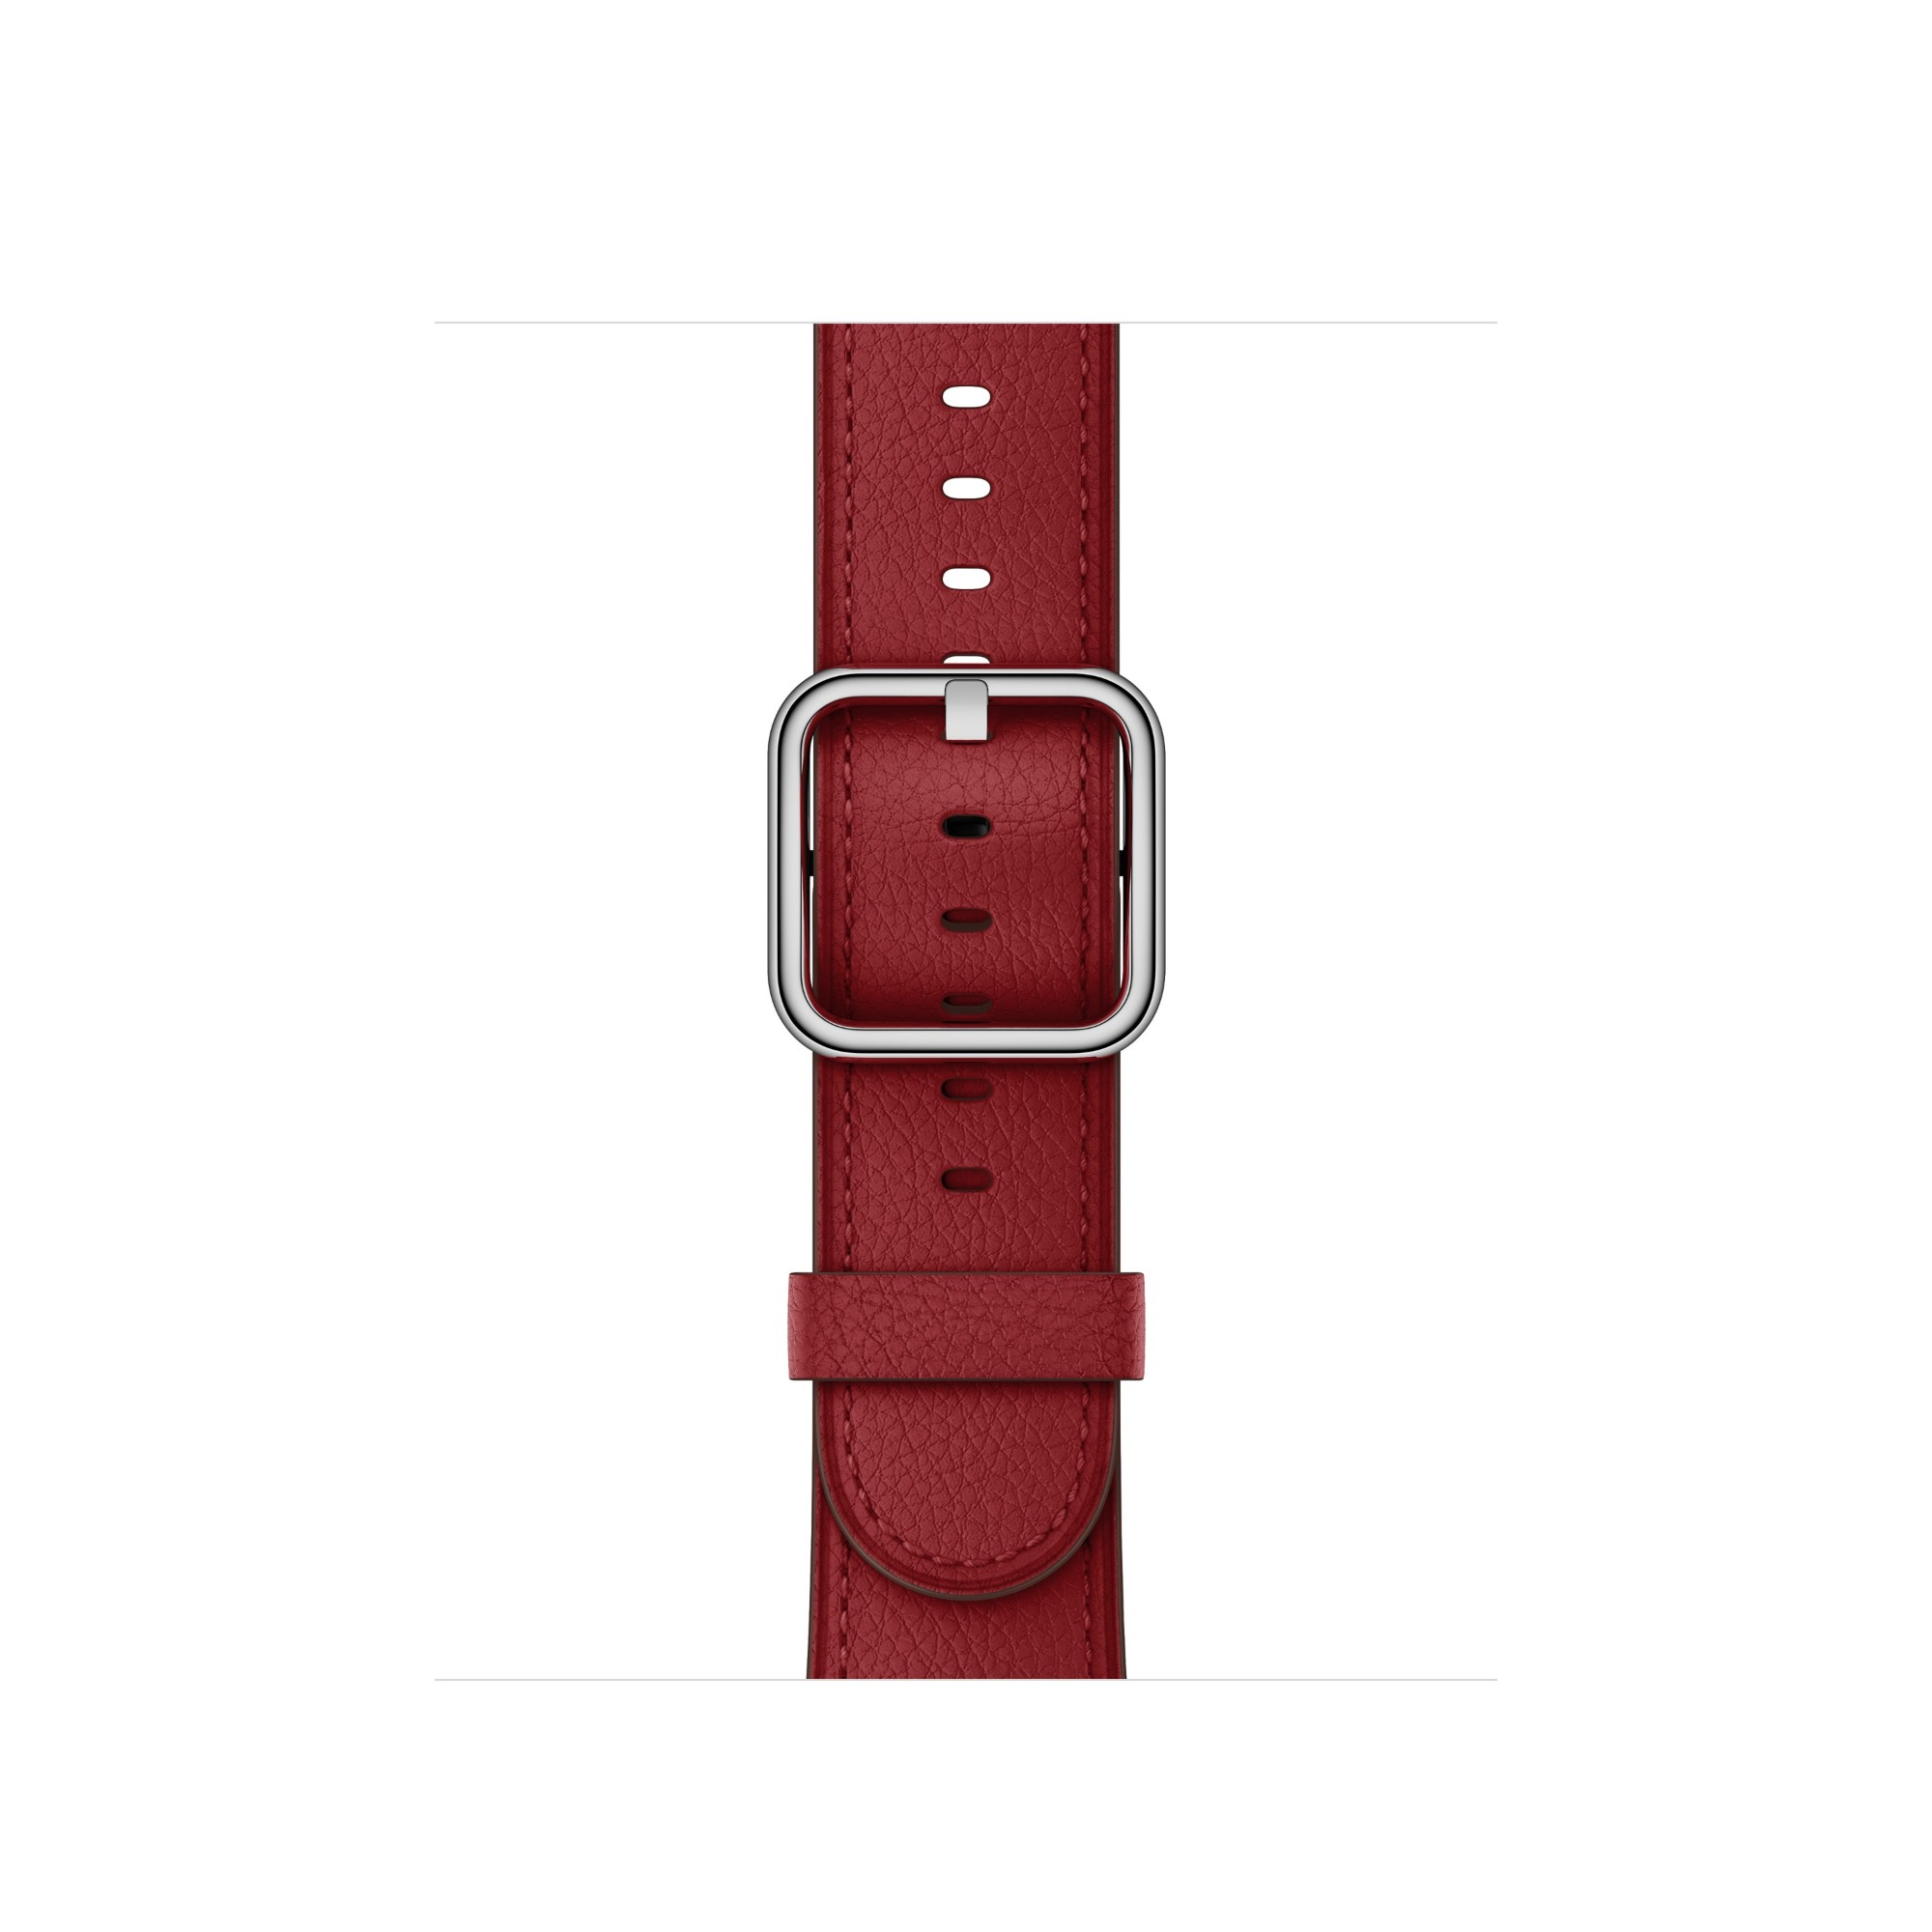 japan oris e ls association red watch importers watches brand leather post member europassion